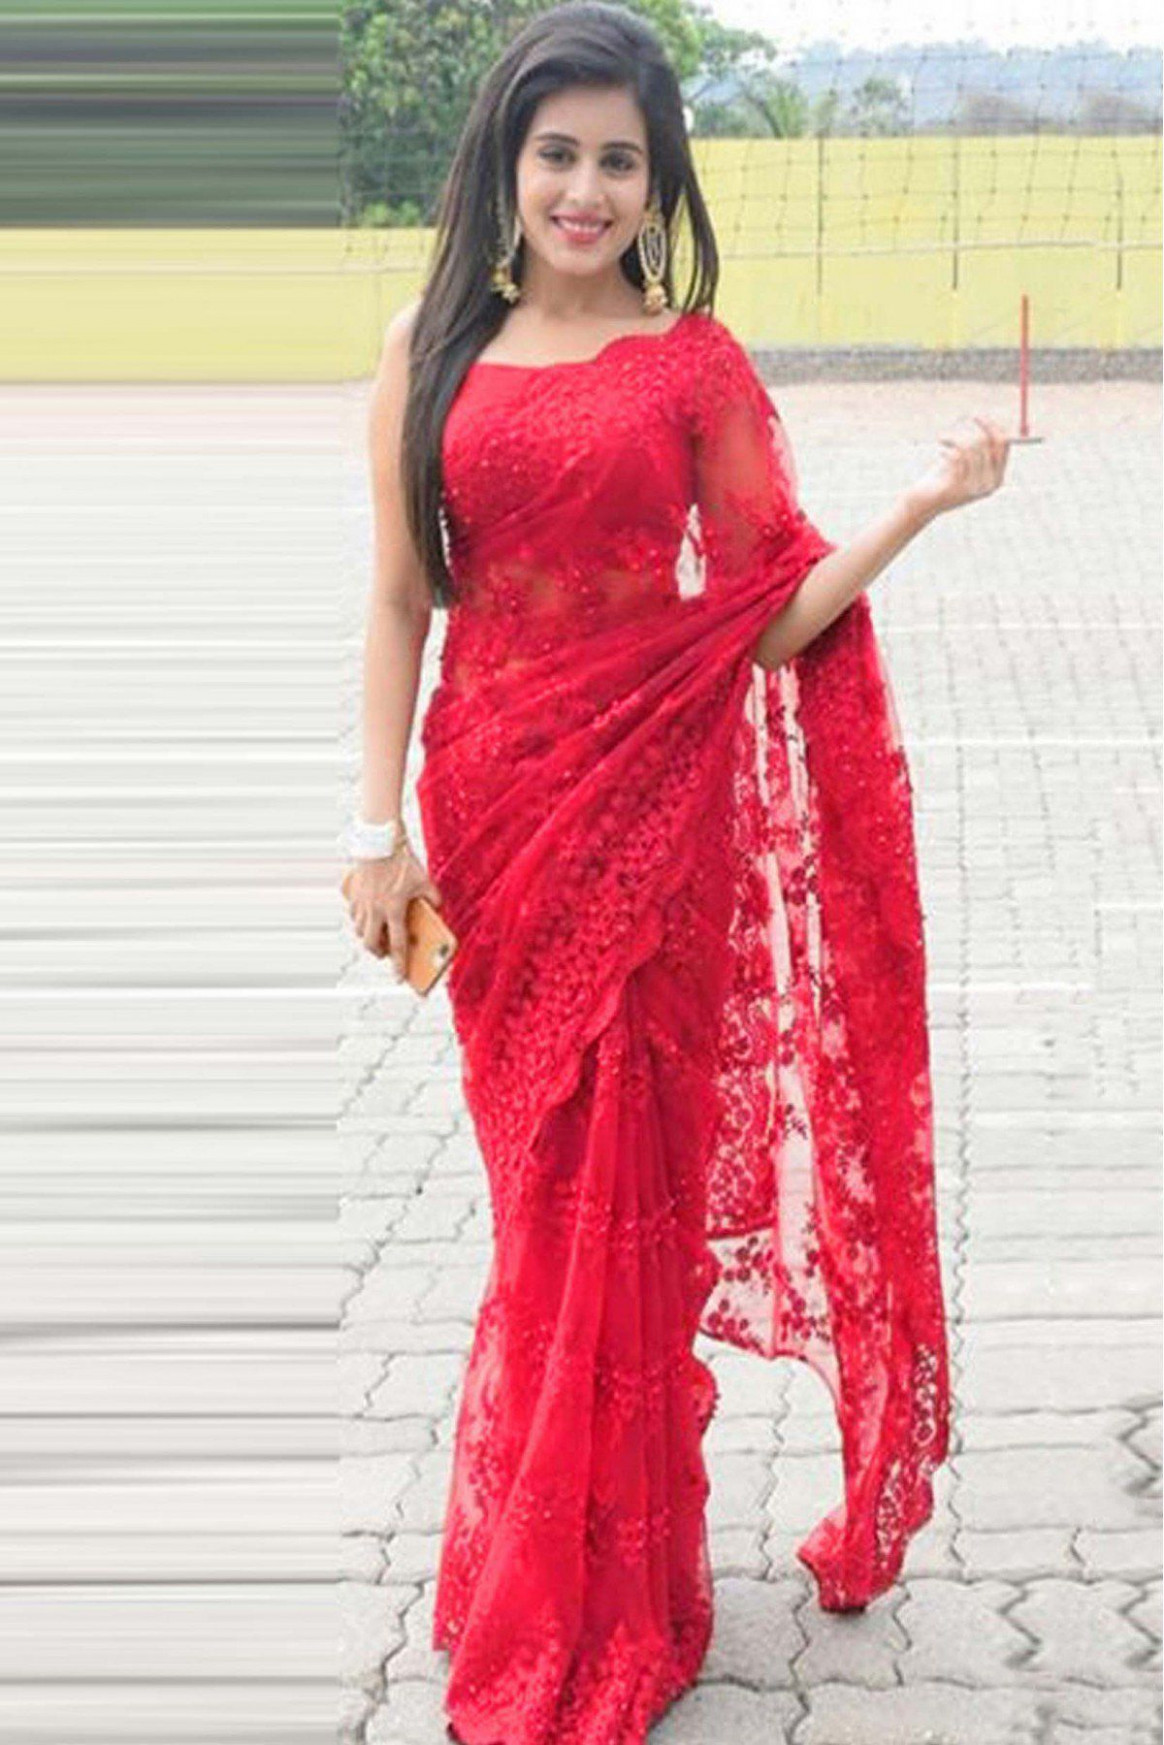 Darshita International Red Net Saree - Buy Darshita